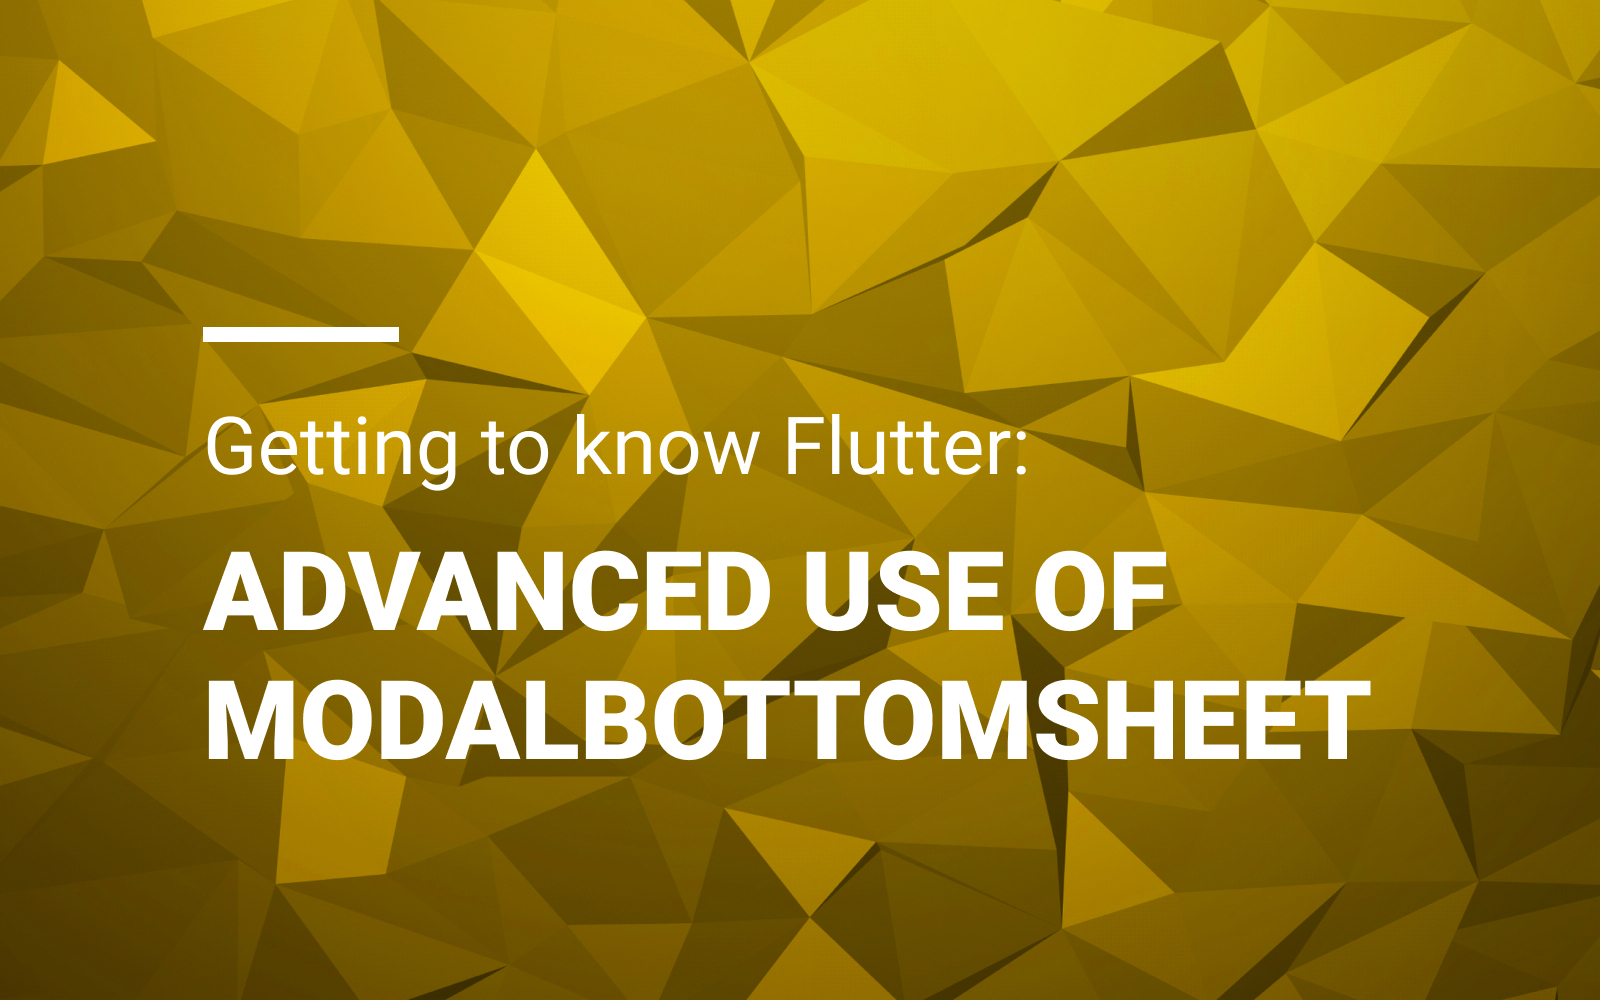 Getting to know Flutter: Advanced use of ModalBottomSheet